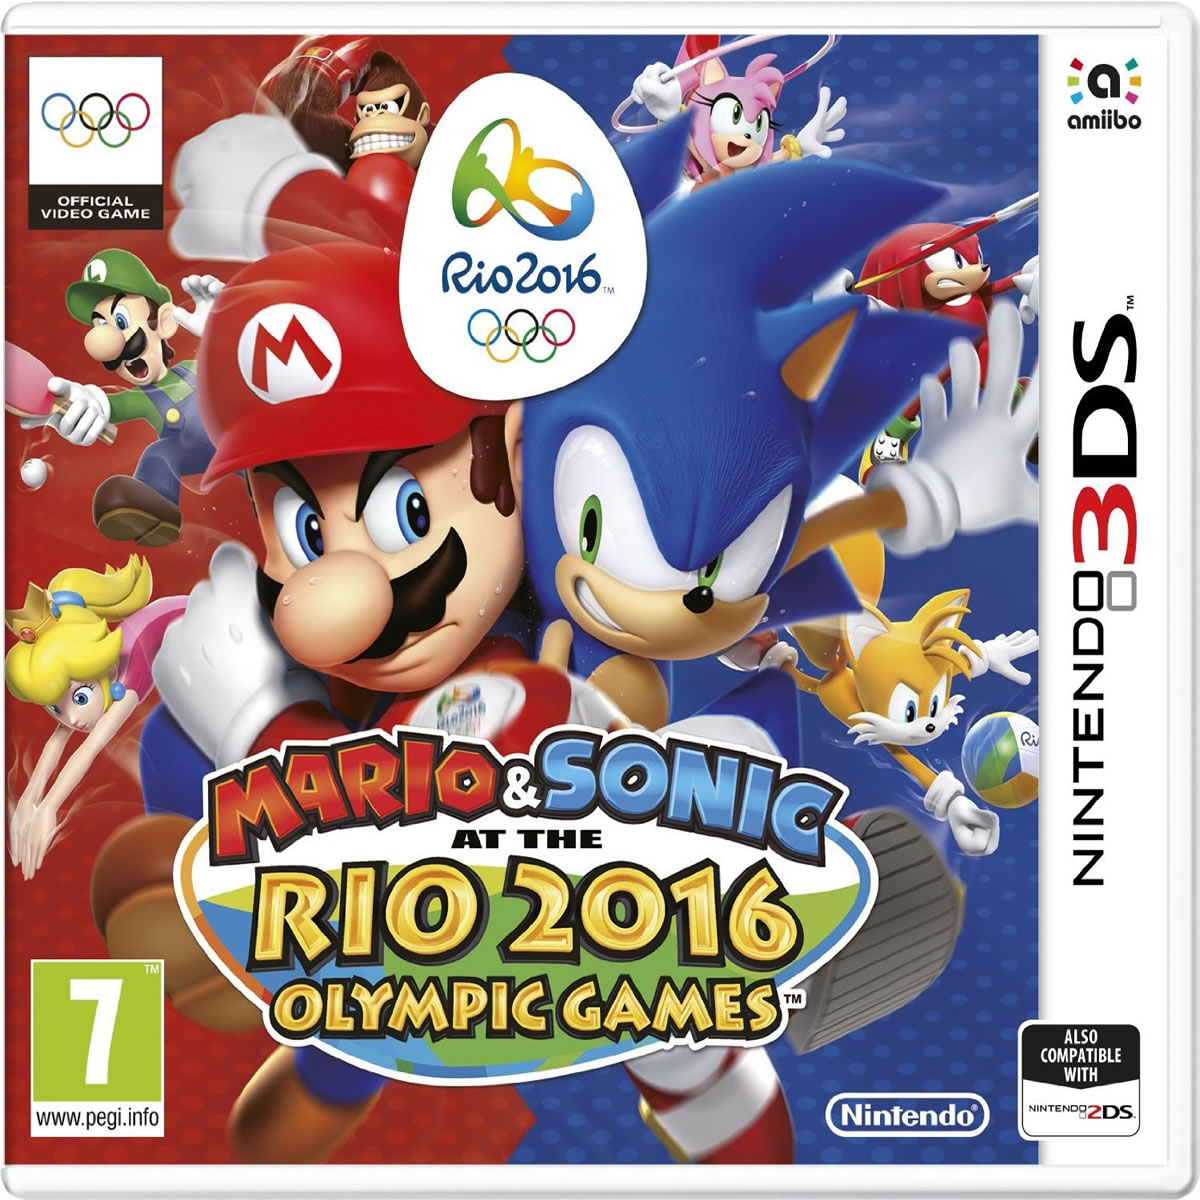 MARIO & SONIC AT THE RIO 2016 OLYMPIC GAMES (3DS, DS)